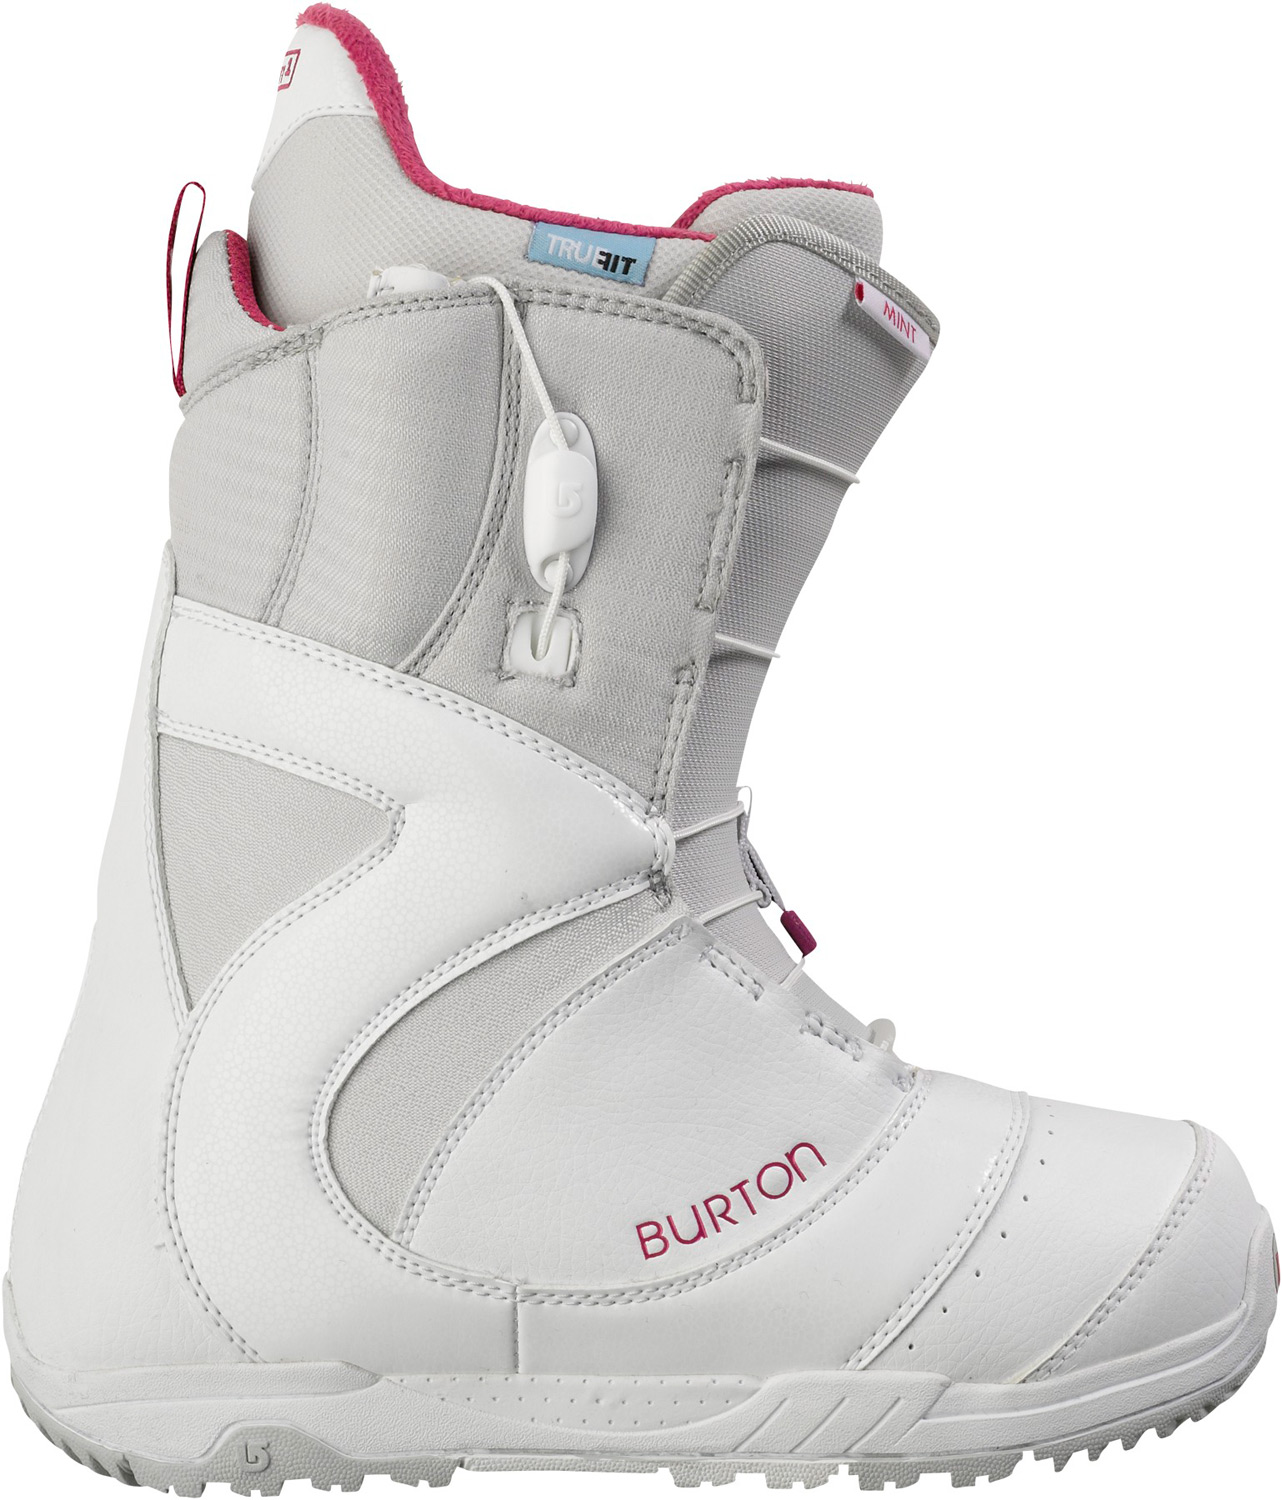 Snowboard Shred better with the world's bestseller.Key Features of the Burton Mint Snowboard Boots: Support: 3 Women's-Specific True Fit Design Lacing: Speed Zone Lacing System for True Zonal Lacing Control Liner: Imprint 1 Liner with Integrated Lacing Cushioning: Dual-Component Outsole with EVA Cushioning and Rubber Ice Spikes Flex and Response: Grip Fit Backstay and Soft Flex 3D Molded Tongue Comfort: NEW Total Comfort Construction, Snow-Proof Internal Gusset, and Level 1 Molded EVA Footbed The World's Bestselling Women's Boot Nine Years Running - $111.95